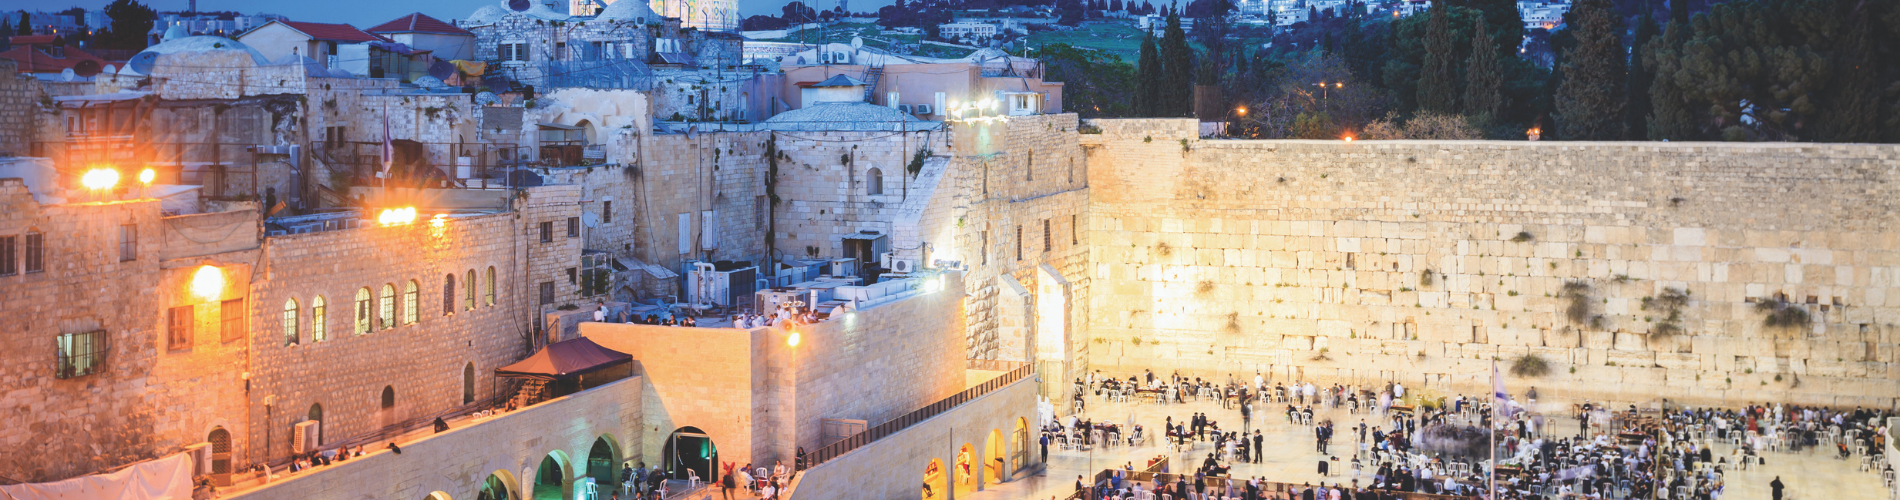 Insight Israel Forum: Embracing Our Tradition & Future